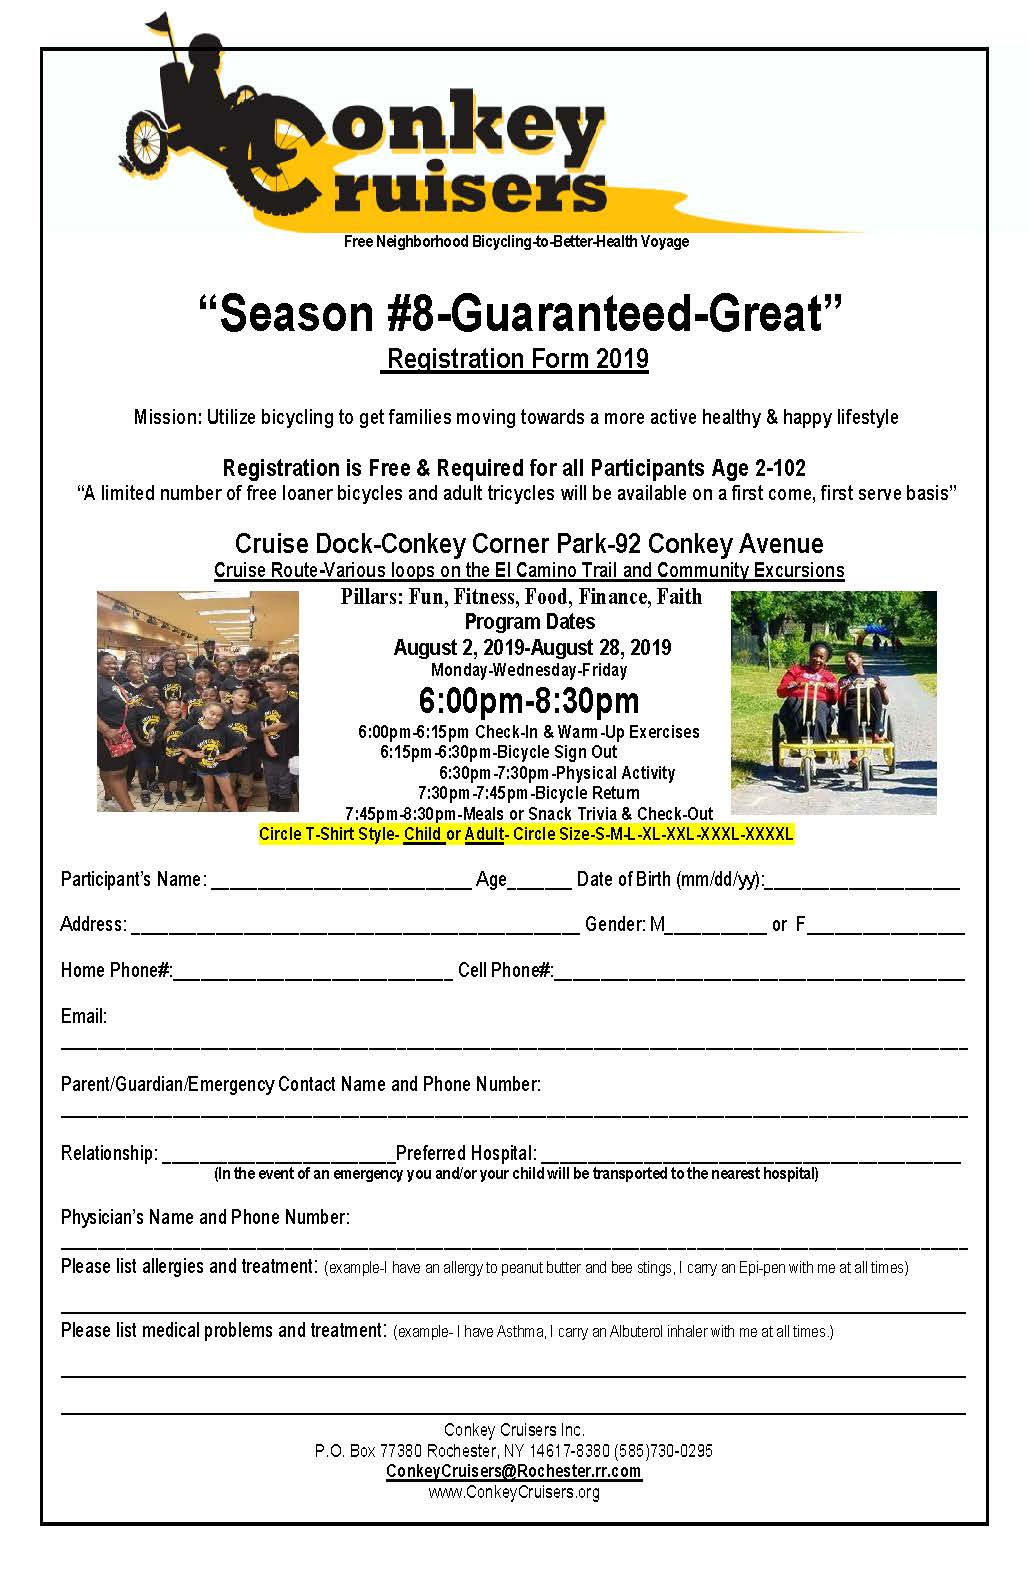 Conkey Cruisers Registration Form 2019_Page_1